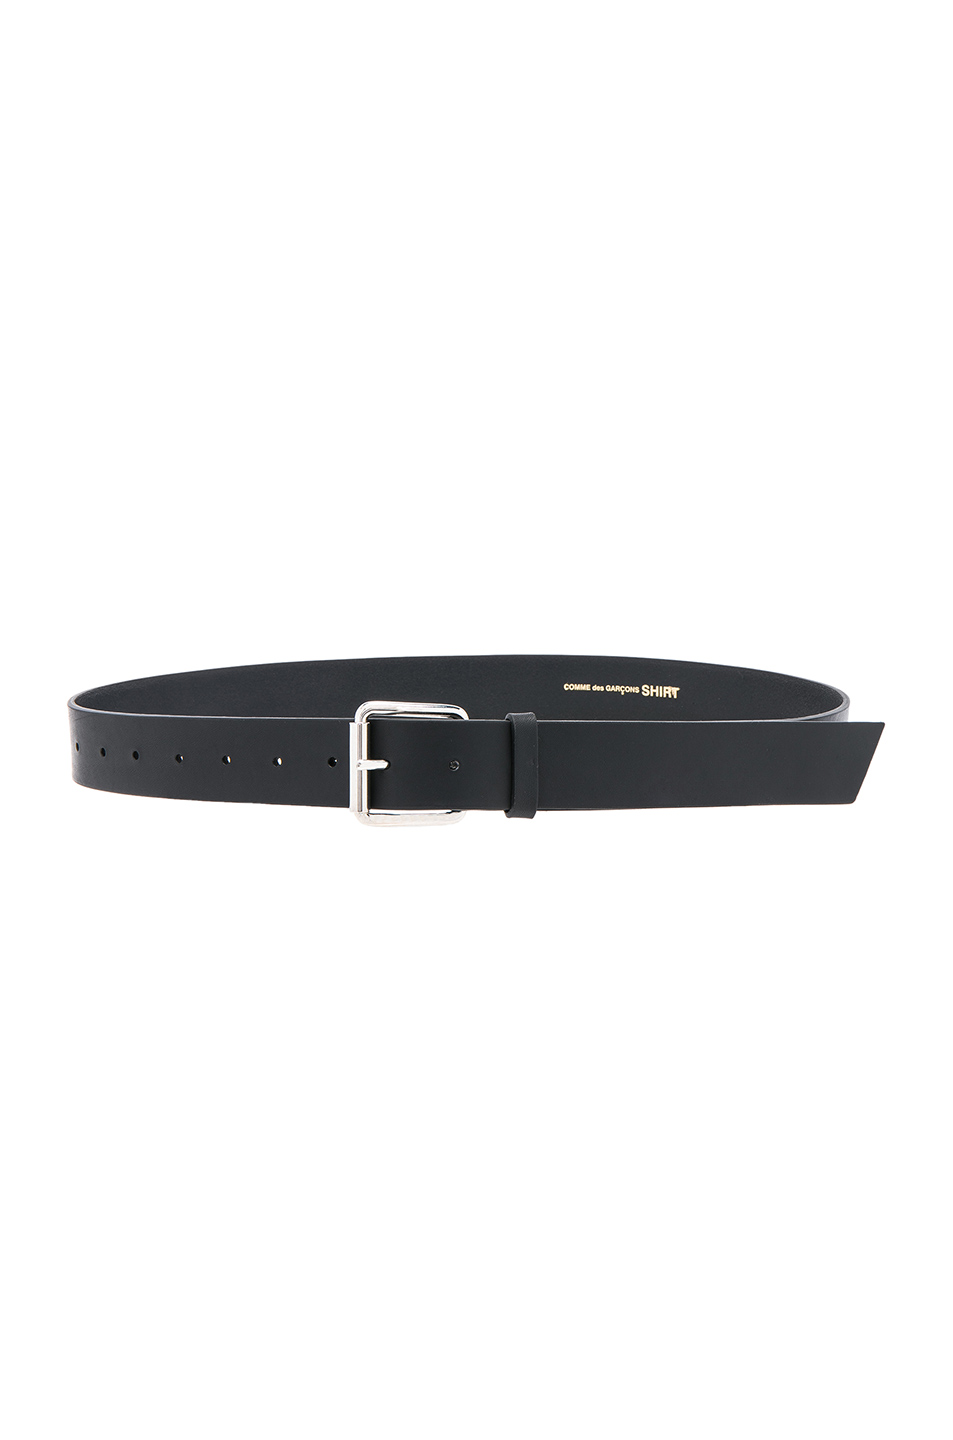 Comme Des Garcons SHIRT Cowhide Plain 35mm Belt in Black